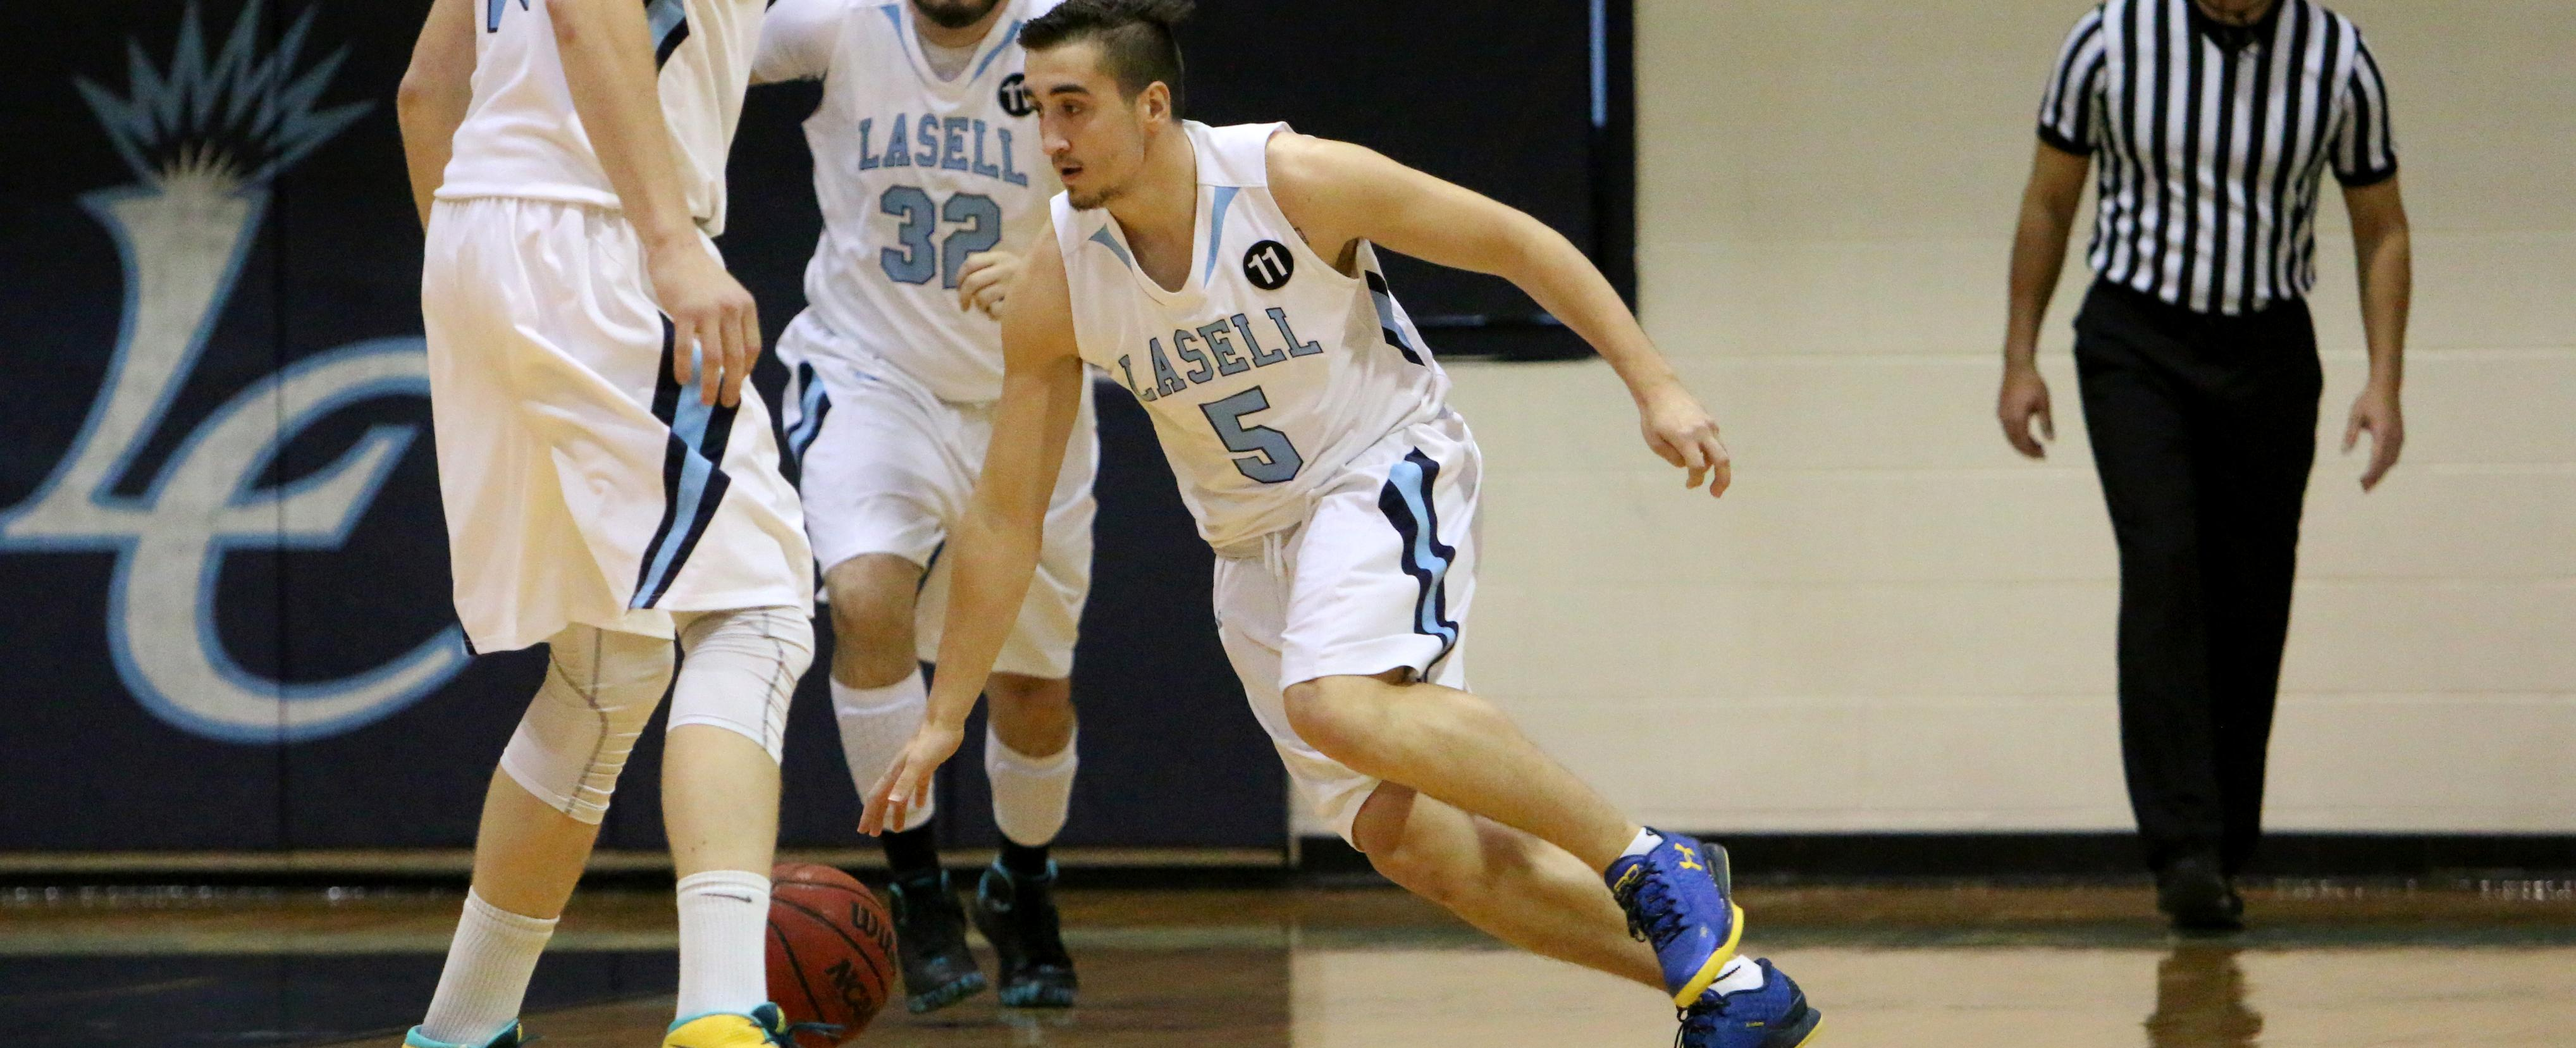 Omanovic Beats Last Second Buzzer to Propel Men's Hoops over AMCATS 71-69